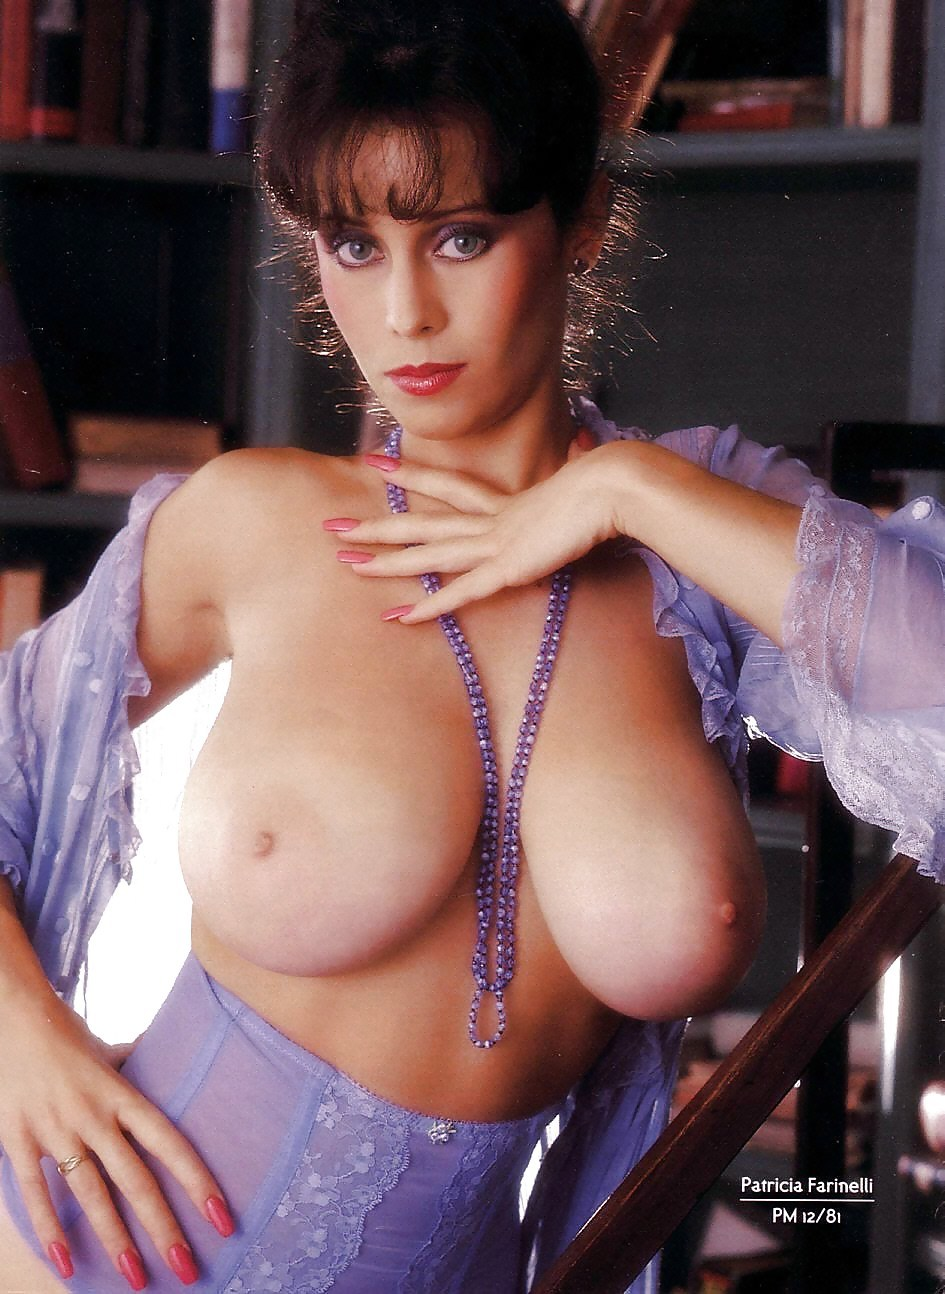 big tits farinelli Patricia